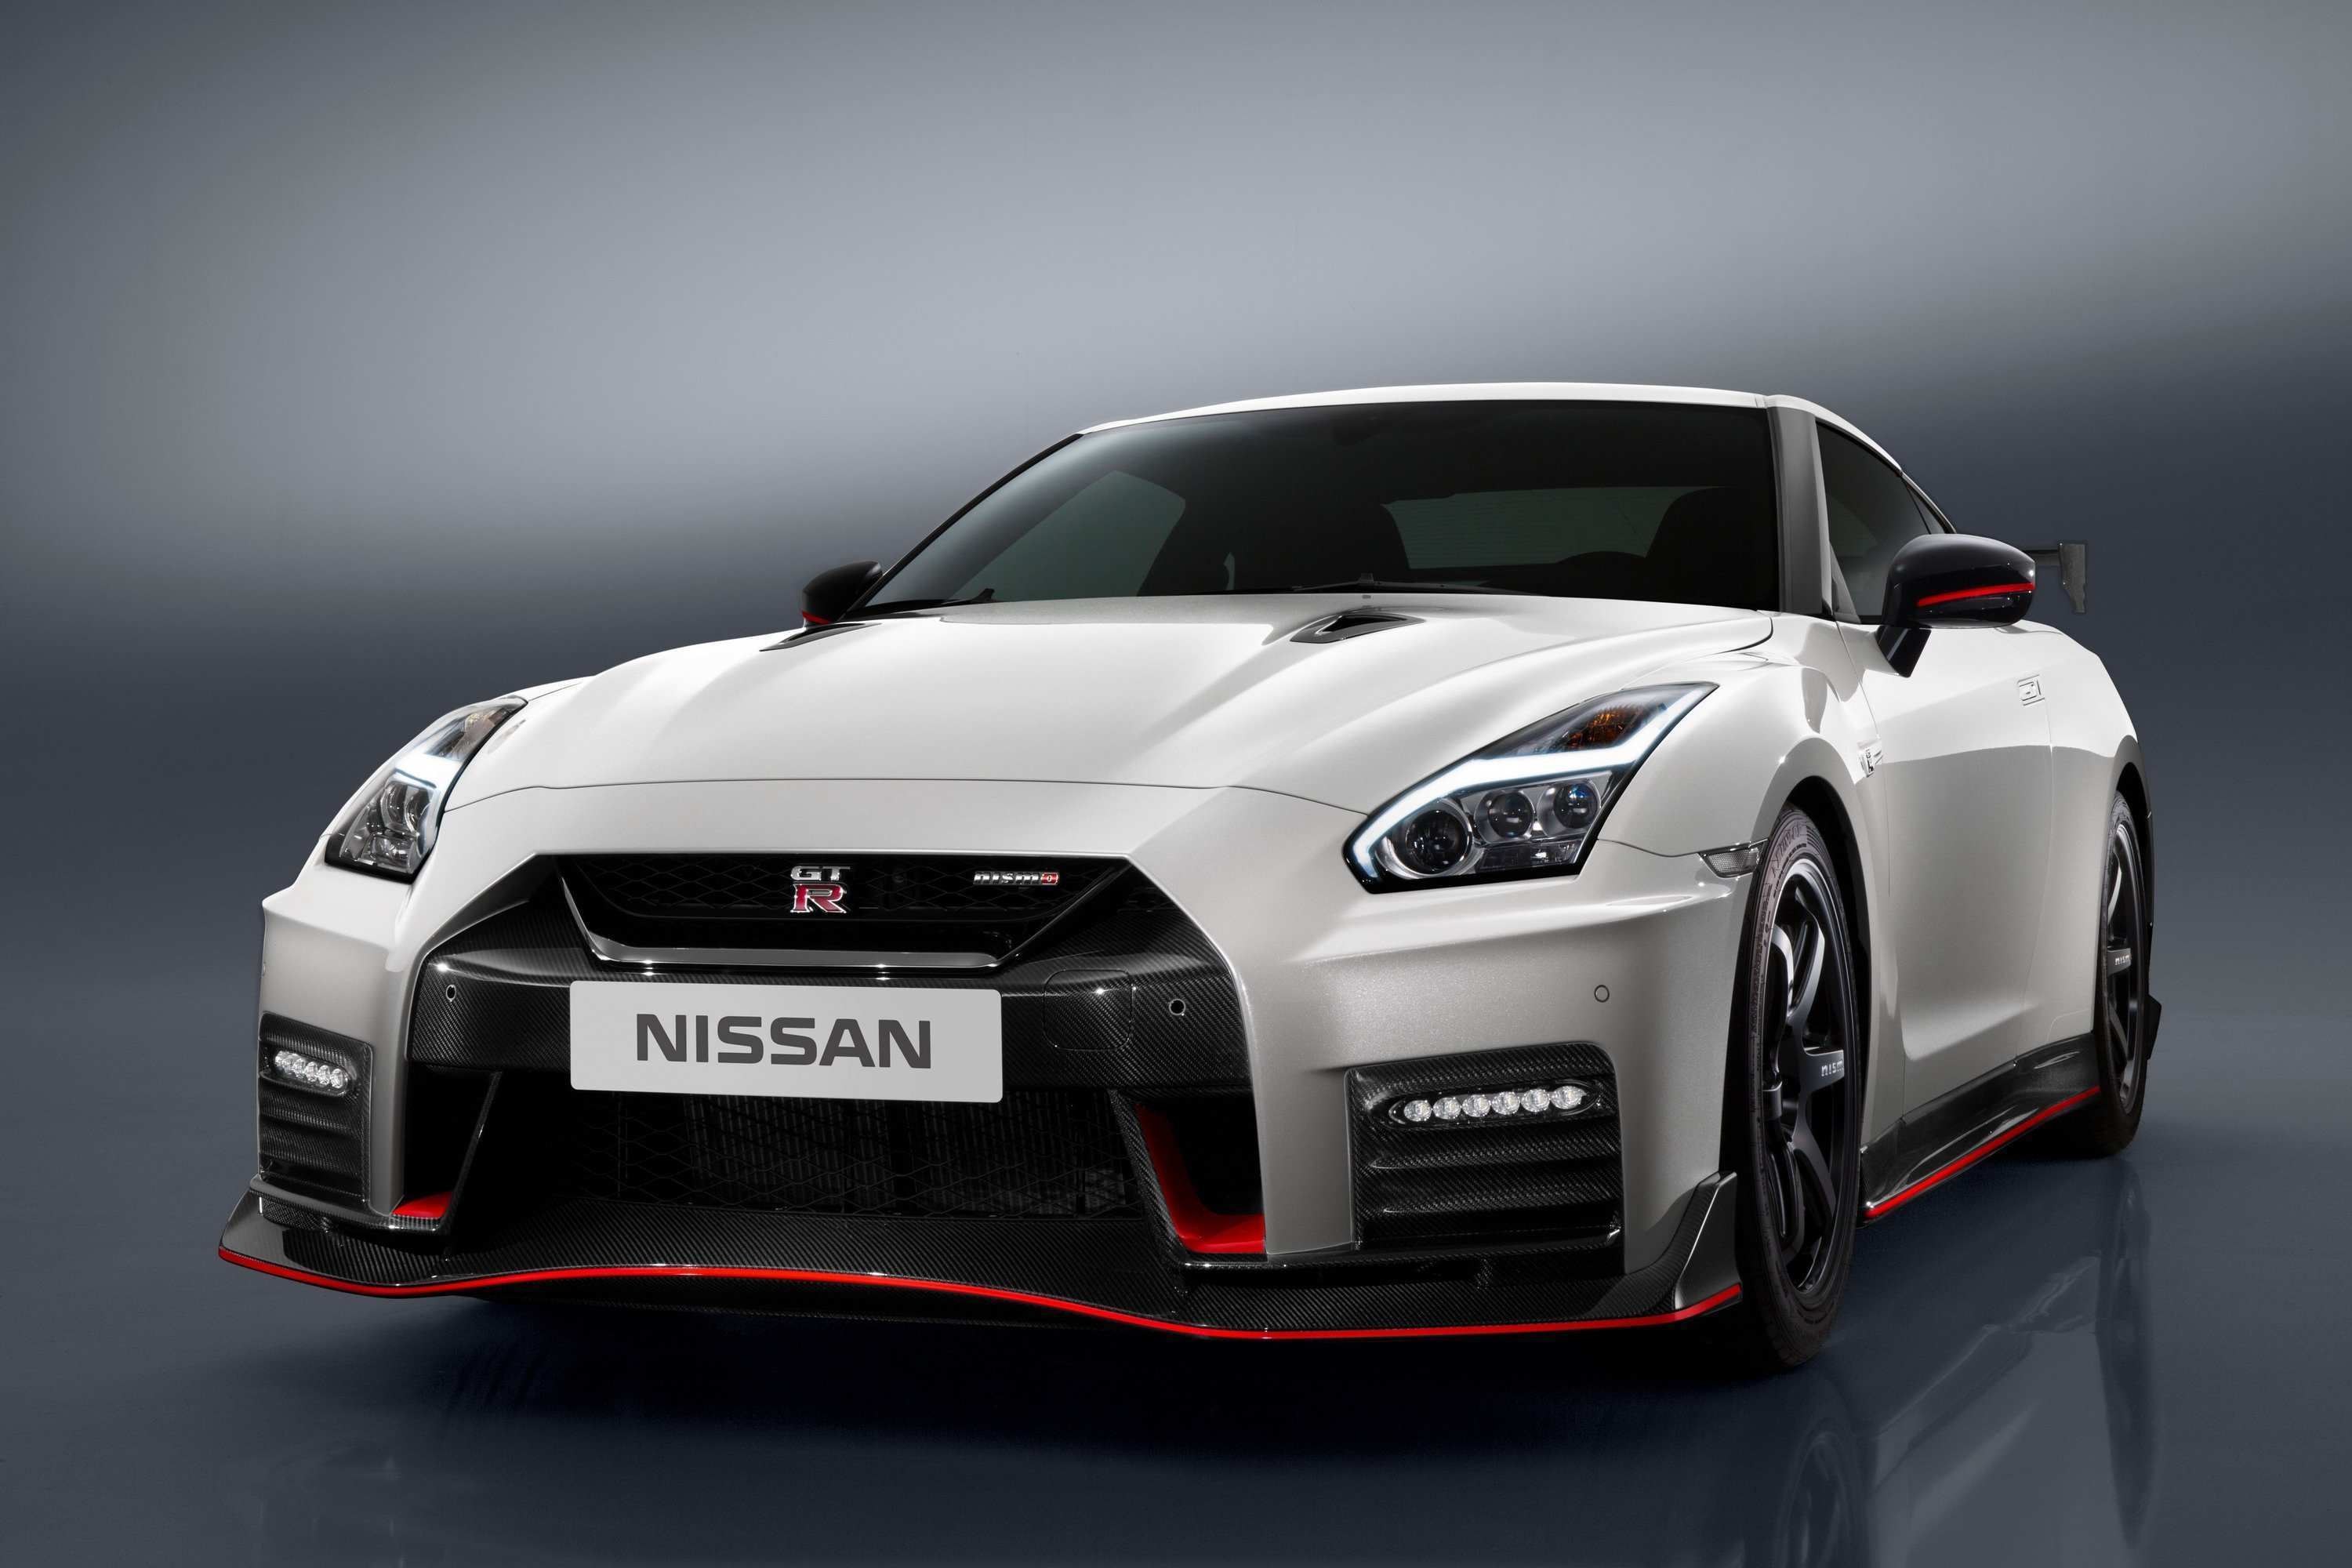 86 Concept of 2020 Nissan Gtr Horsepower Review with 2020 Nissan Gtr Horsepower